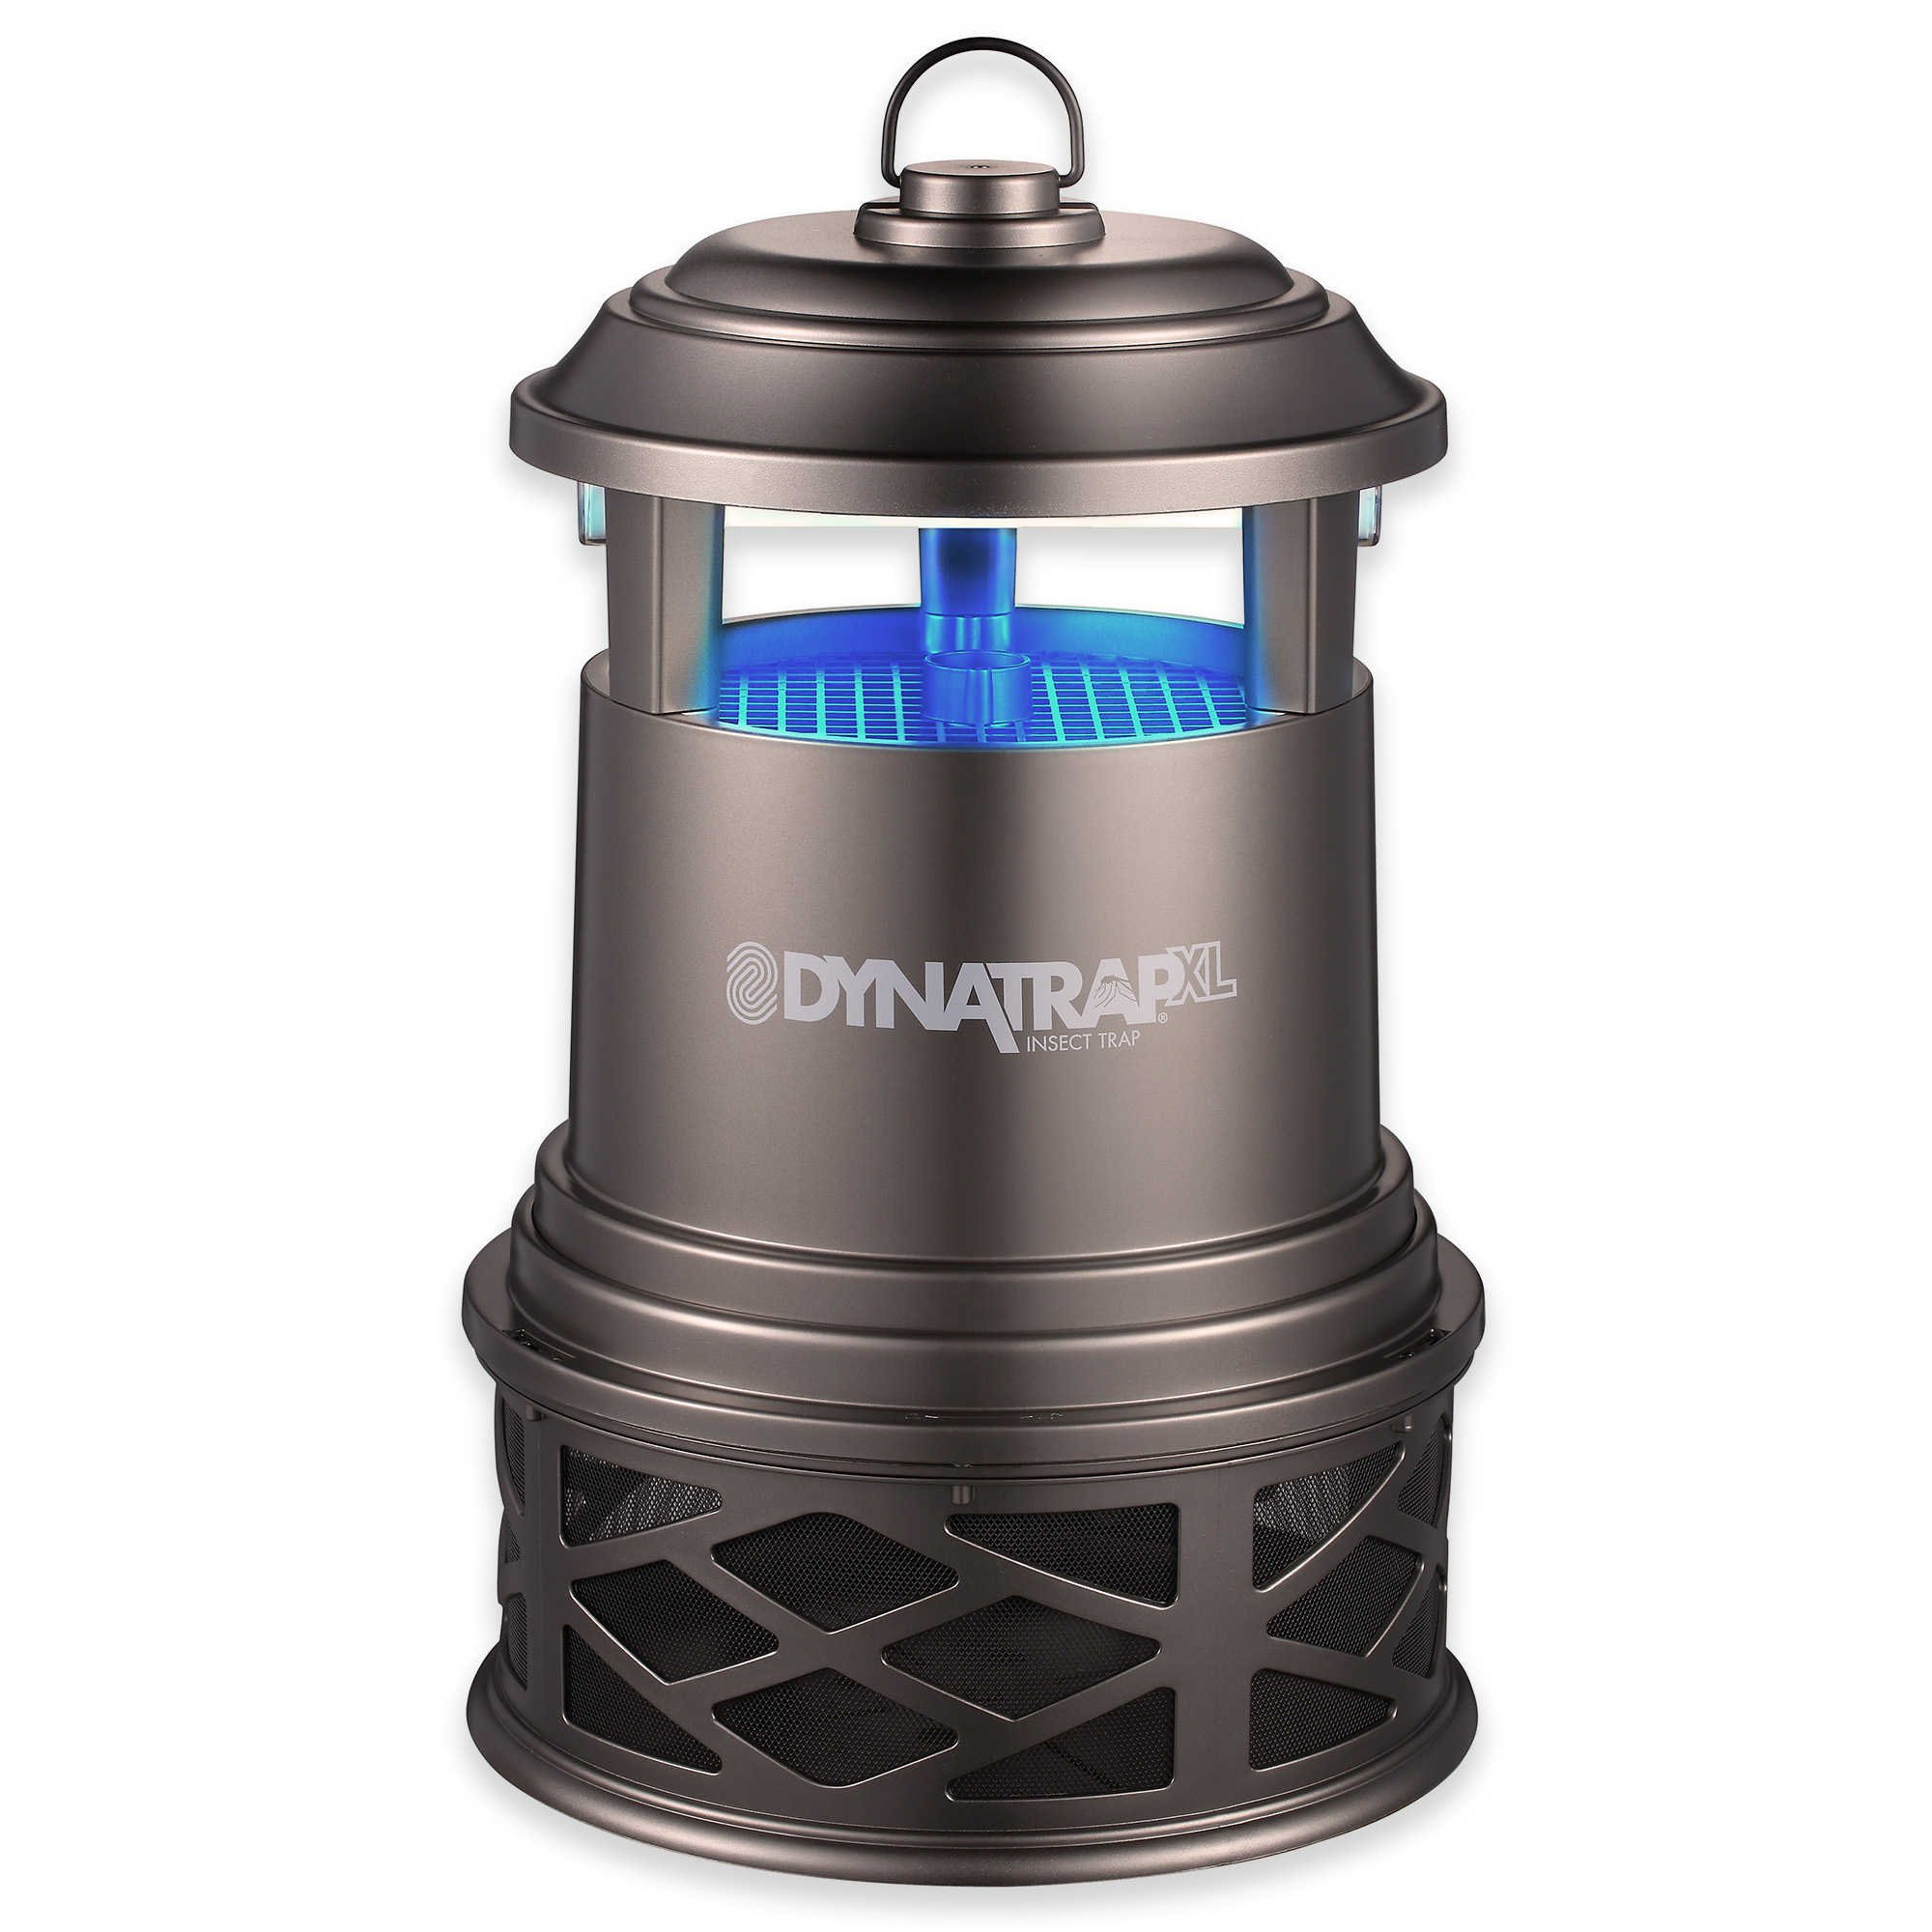 Dynatrap XL Engineered For 3-way Protection Against Mosquitos and Other Flying Insects For Up to One Acre Insect Trap in Bronze